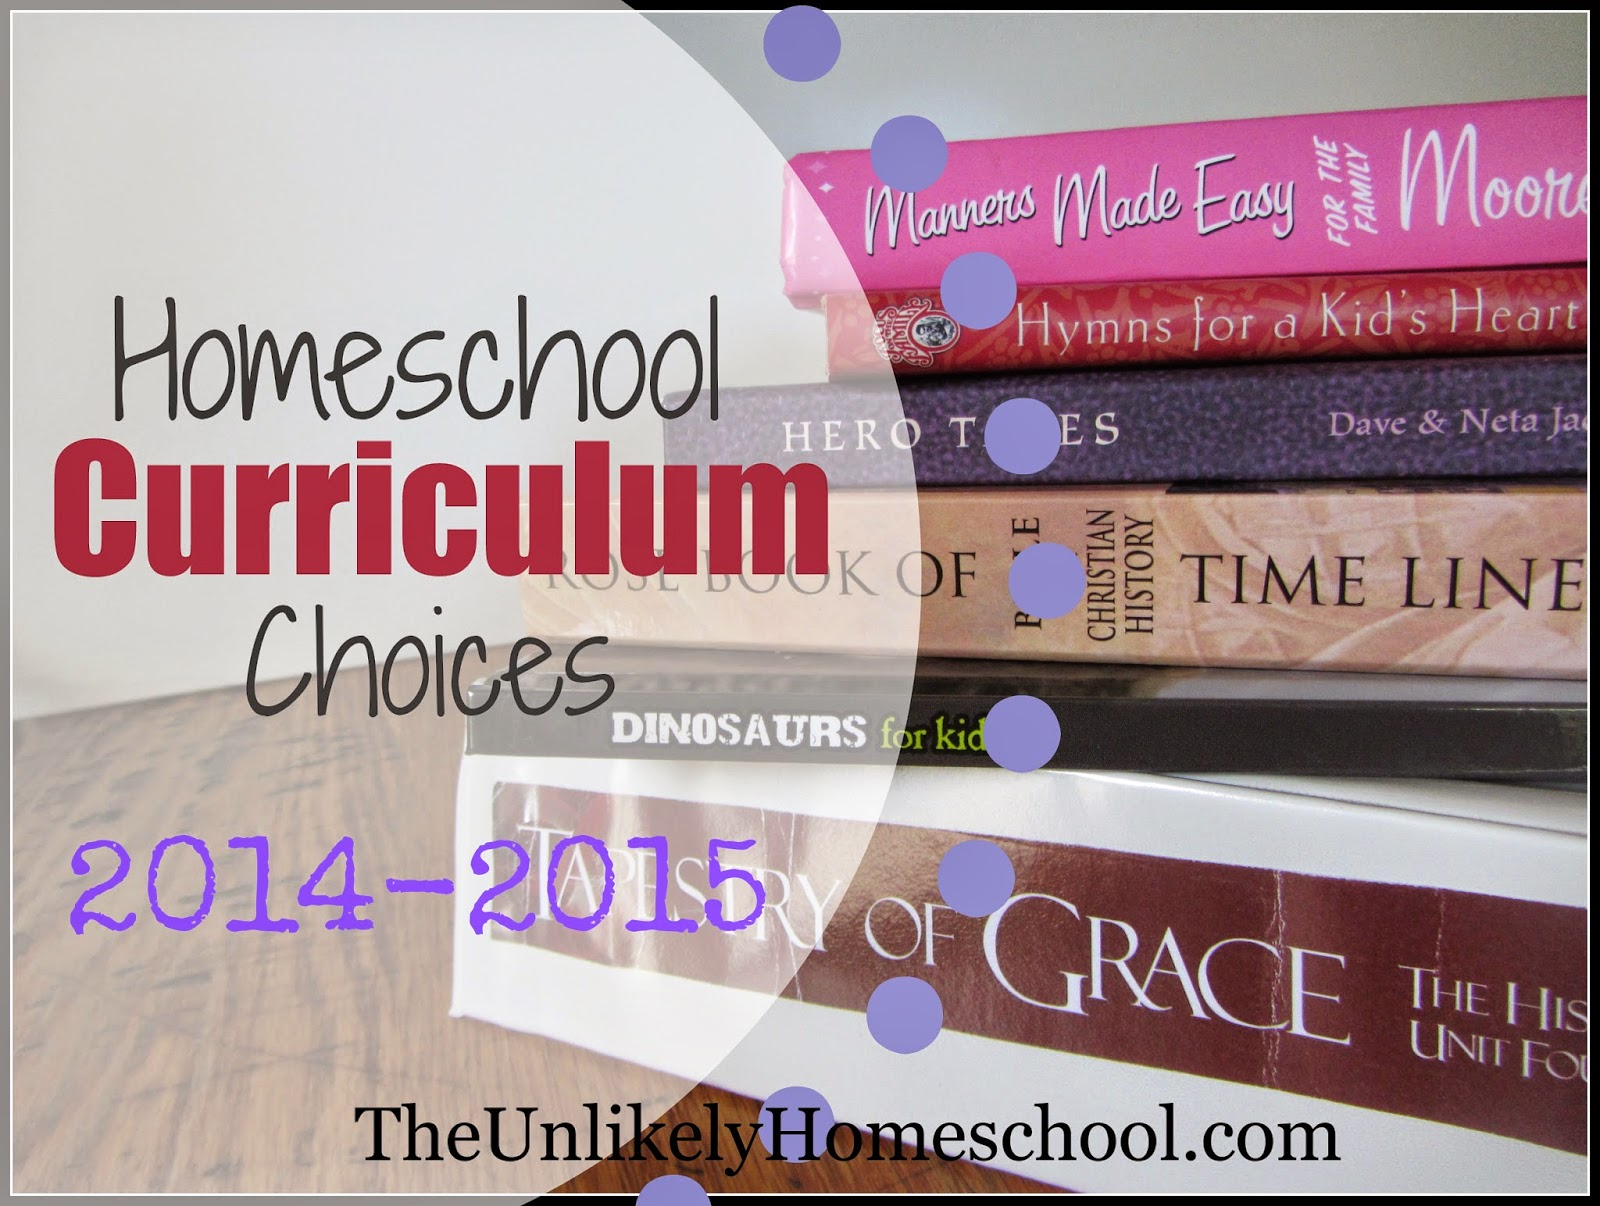 Homeschool Curriculum Choices 2014-2015 {The Unlikely Homeschool} 6th, 3rd, 2nd, Kindergarten, and tot school